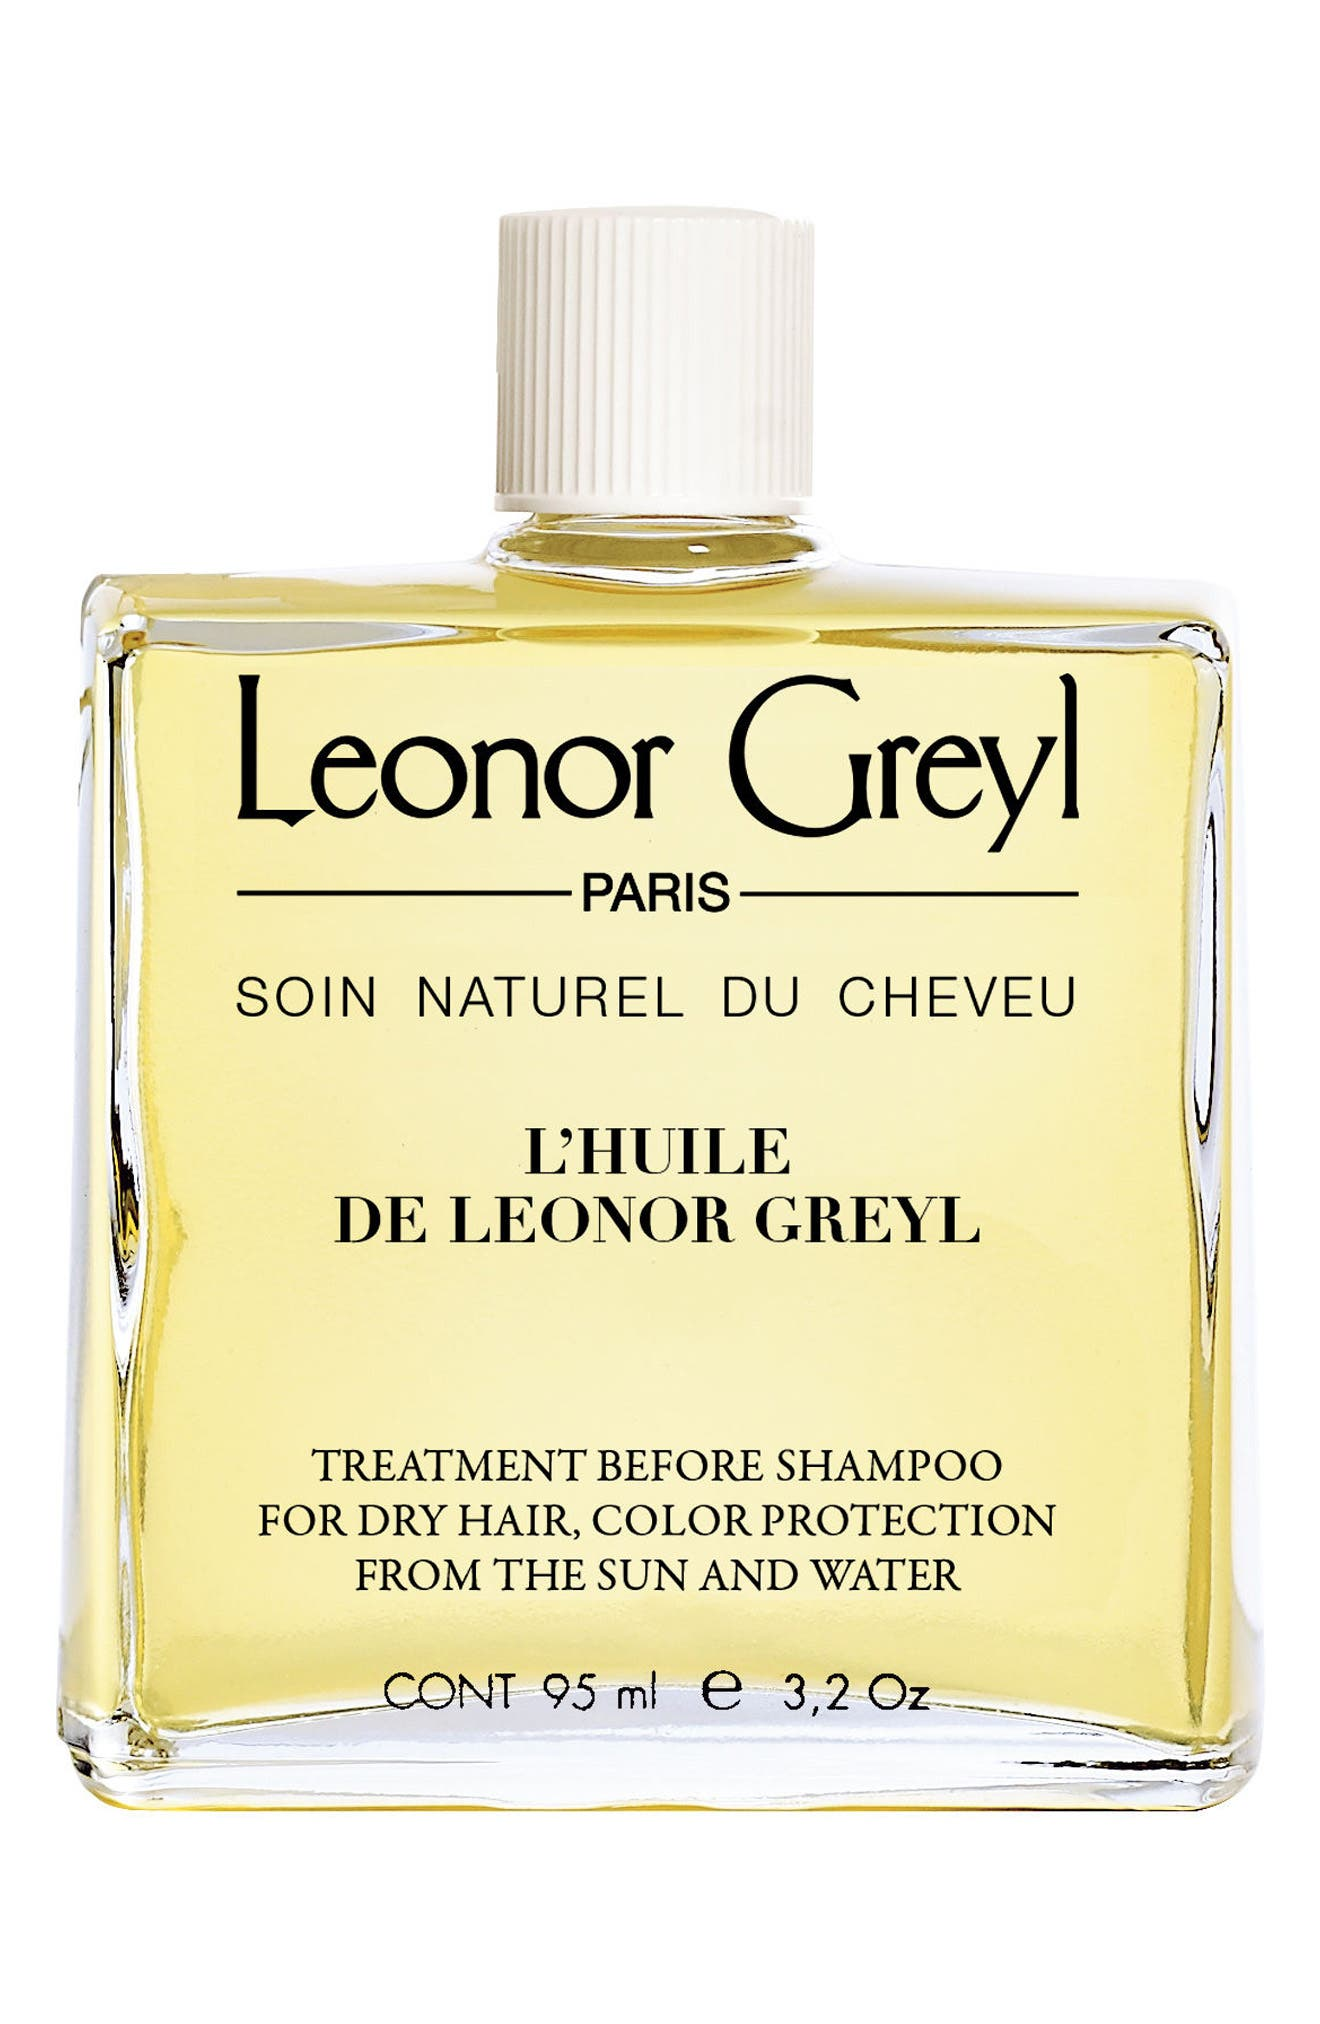 Leonor Greyl Paris treatment before shampoo